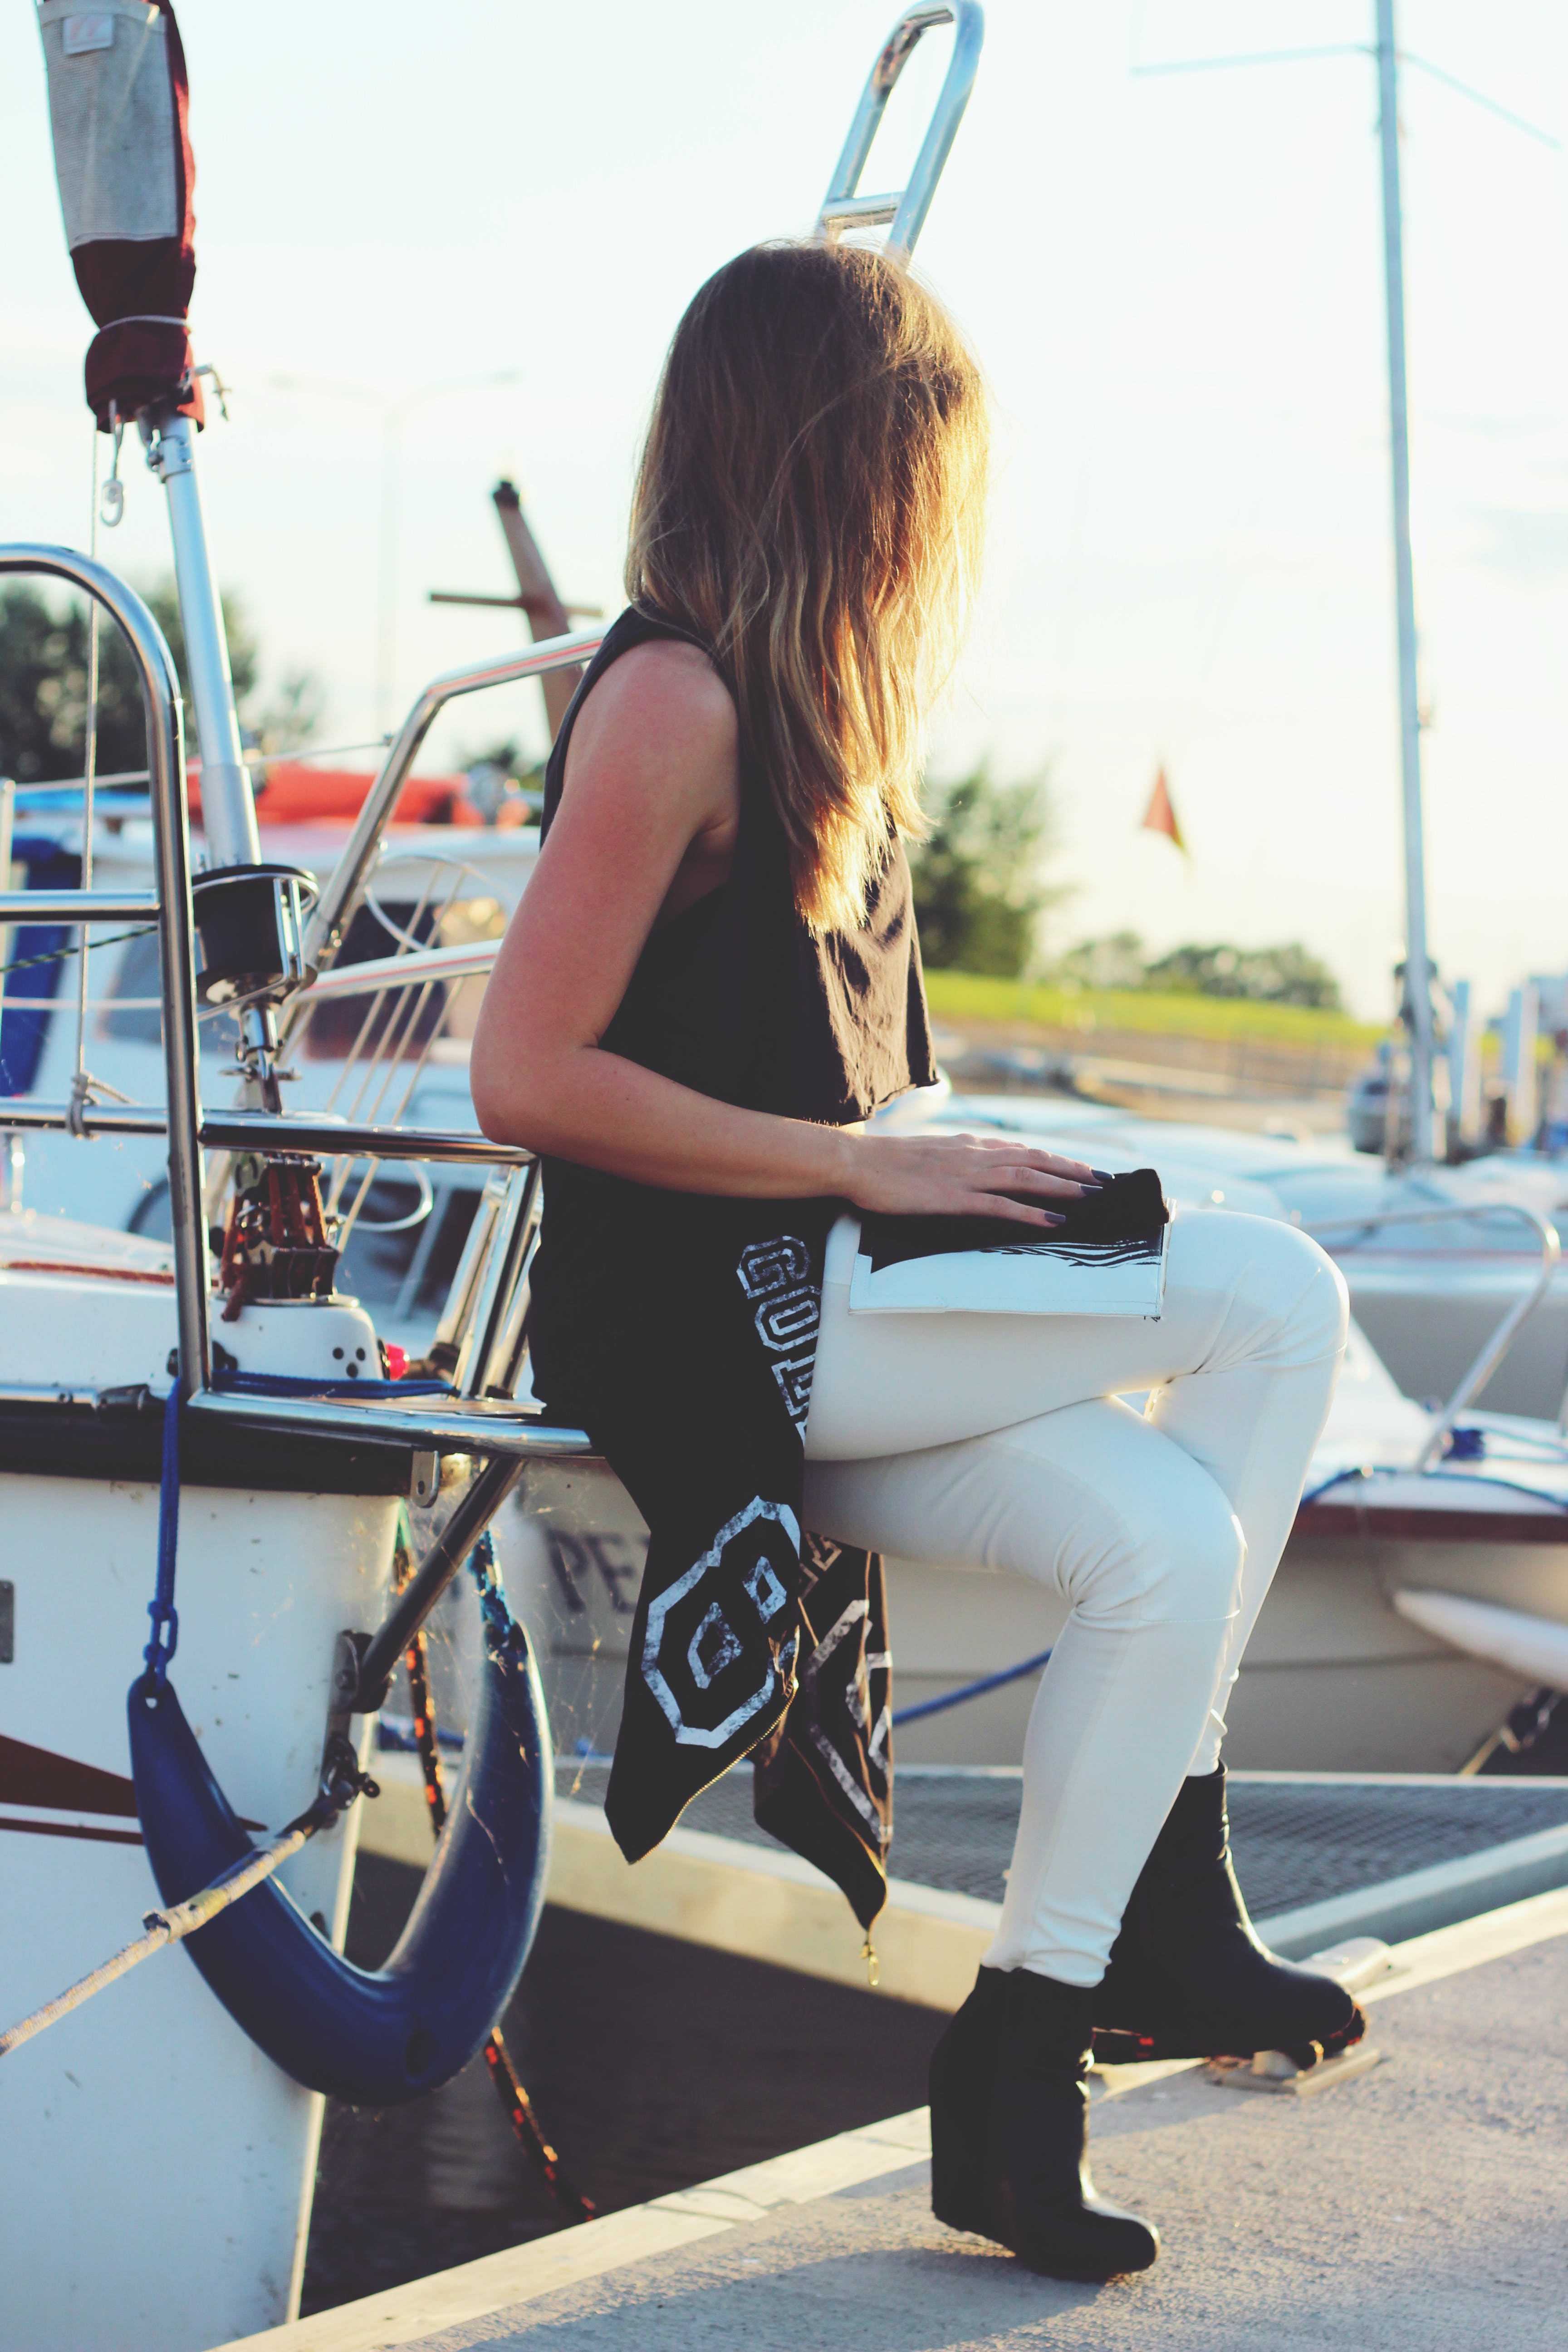 Girl sitting on the boat